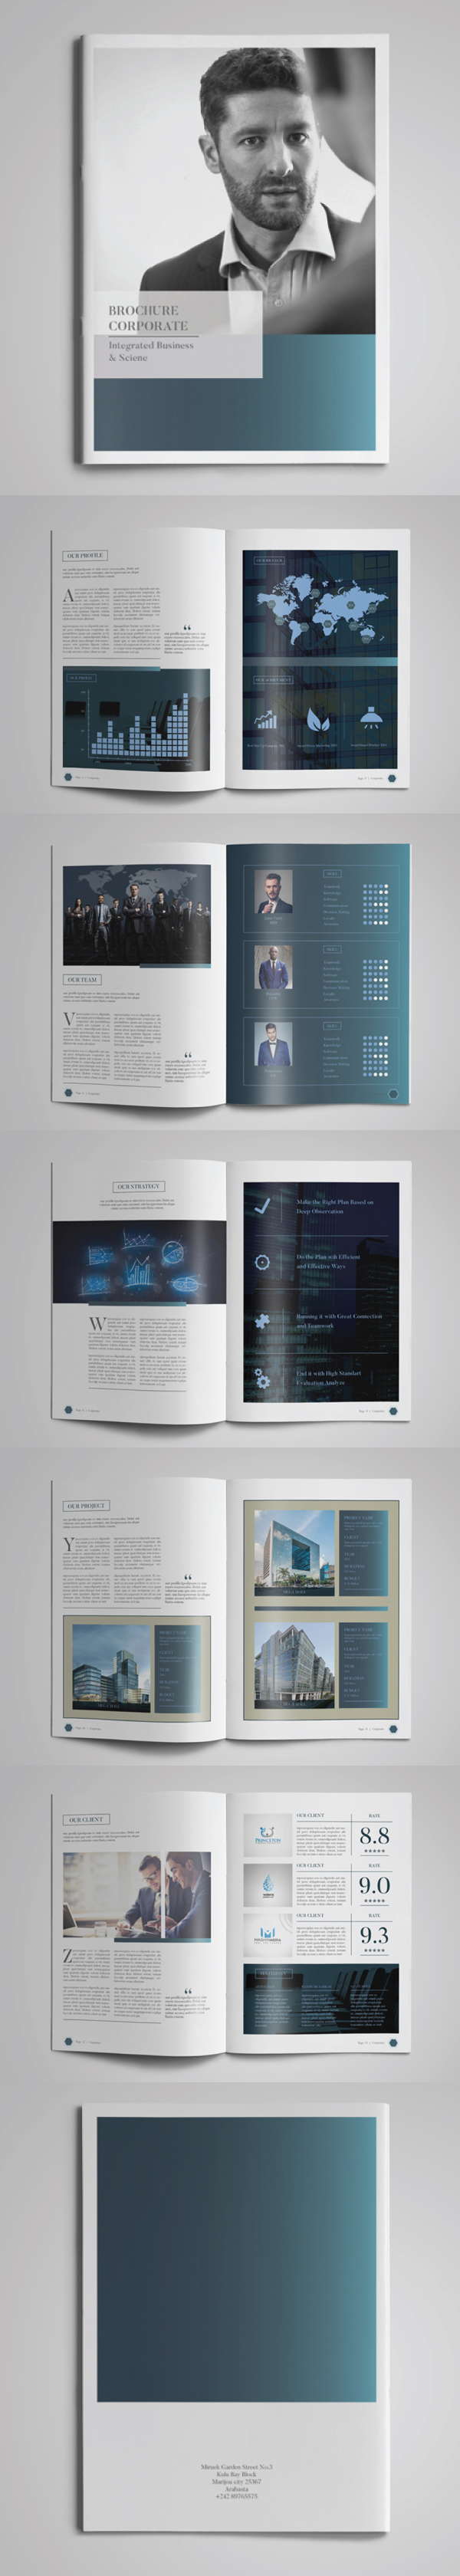 Multipurpose Brochure Corporate Template